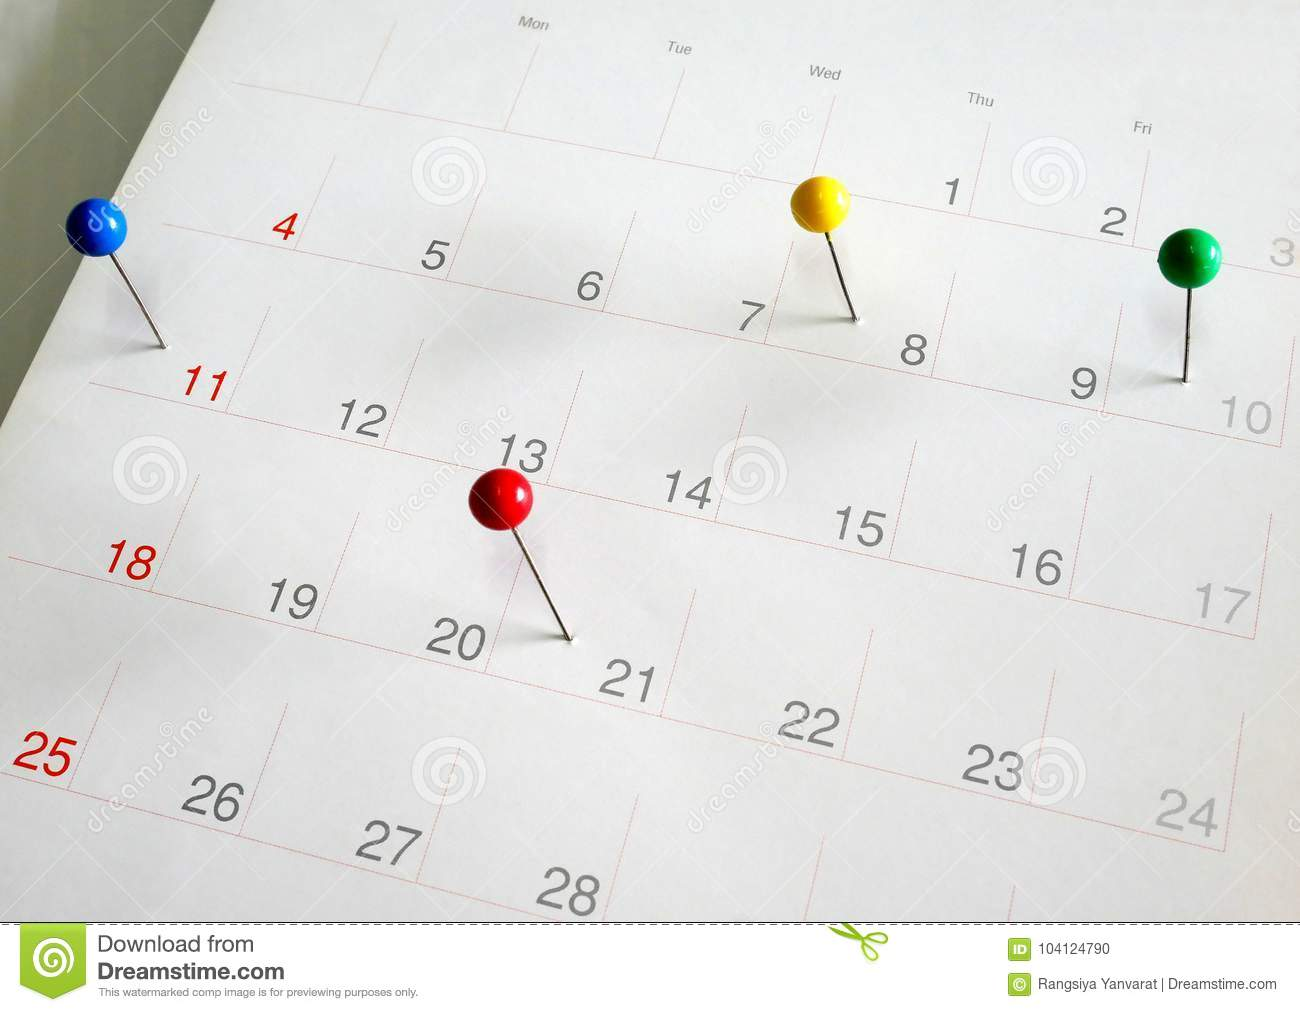 Event Calendar For Organization : Events stock images download photos